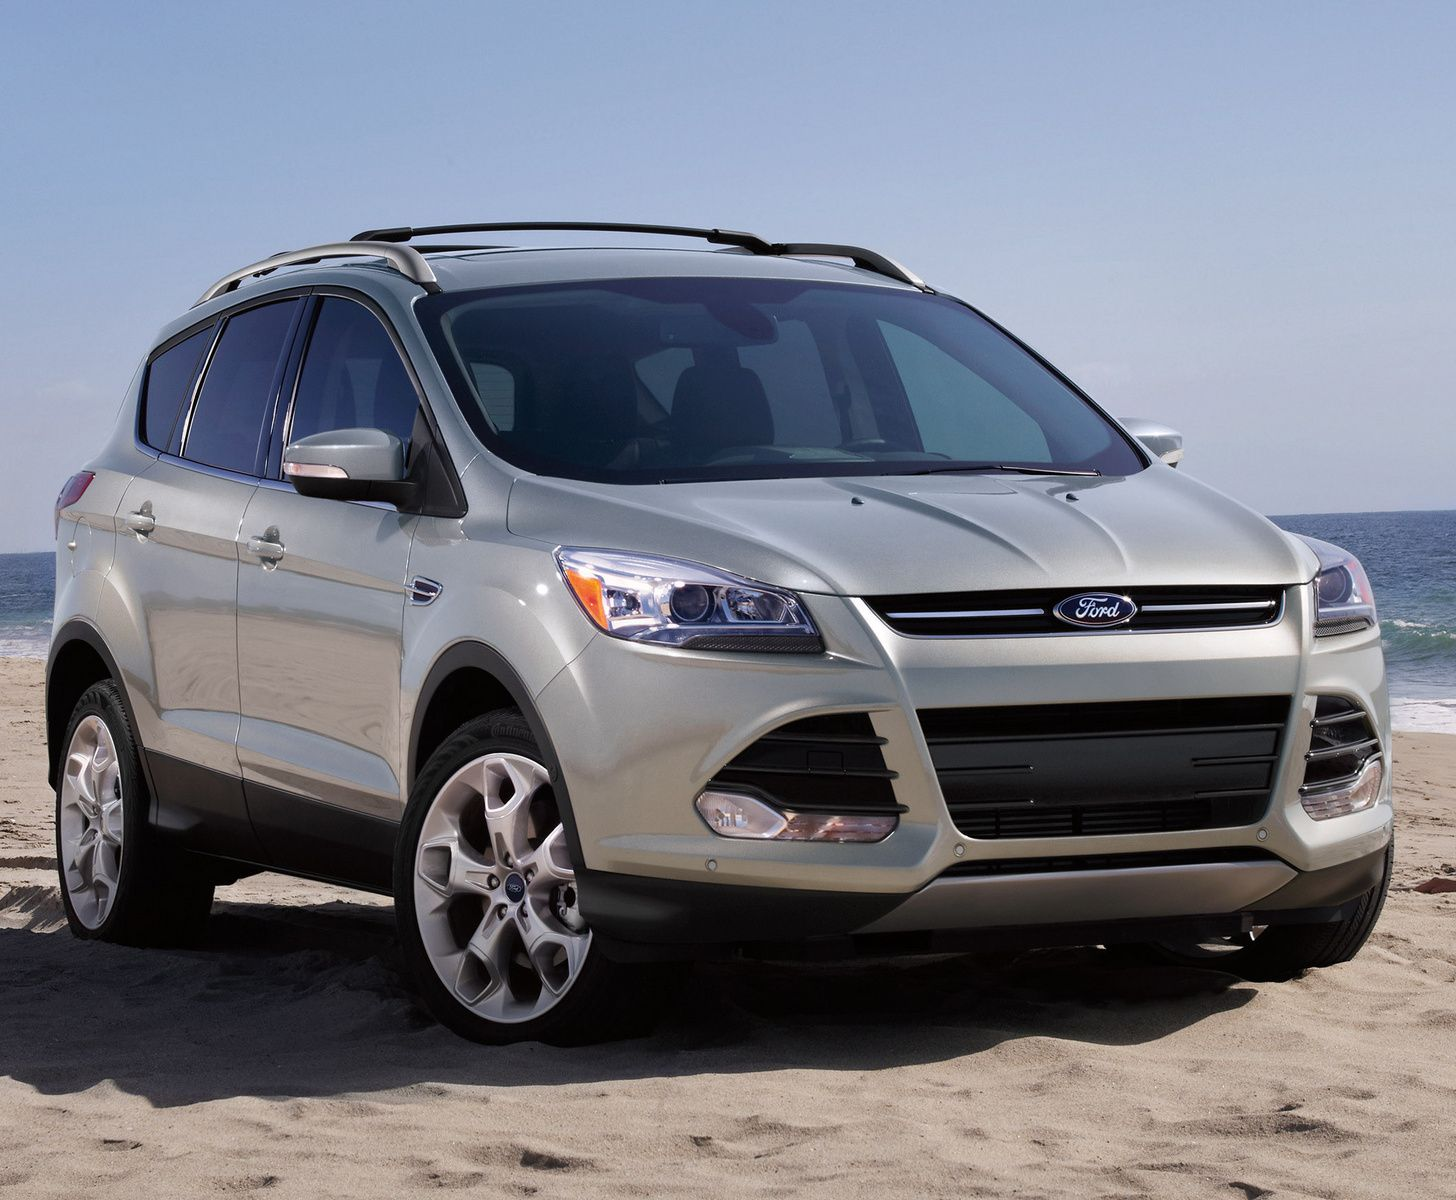 Ford Escape Home Research Ford Escape 2014 Ford Escape